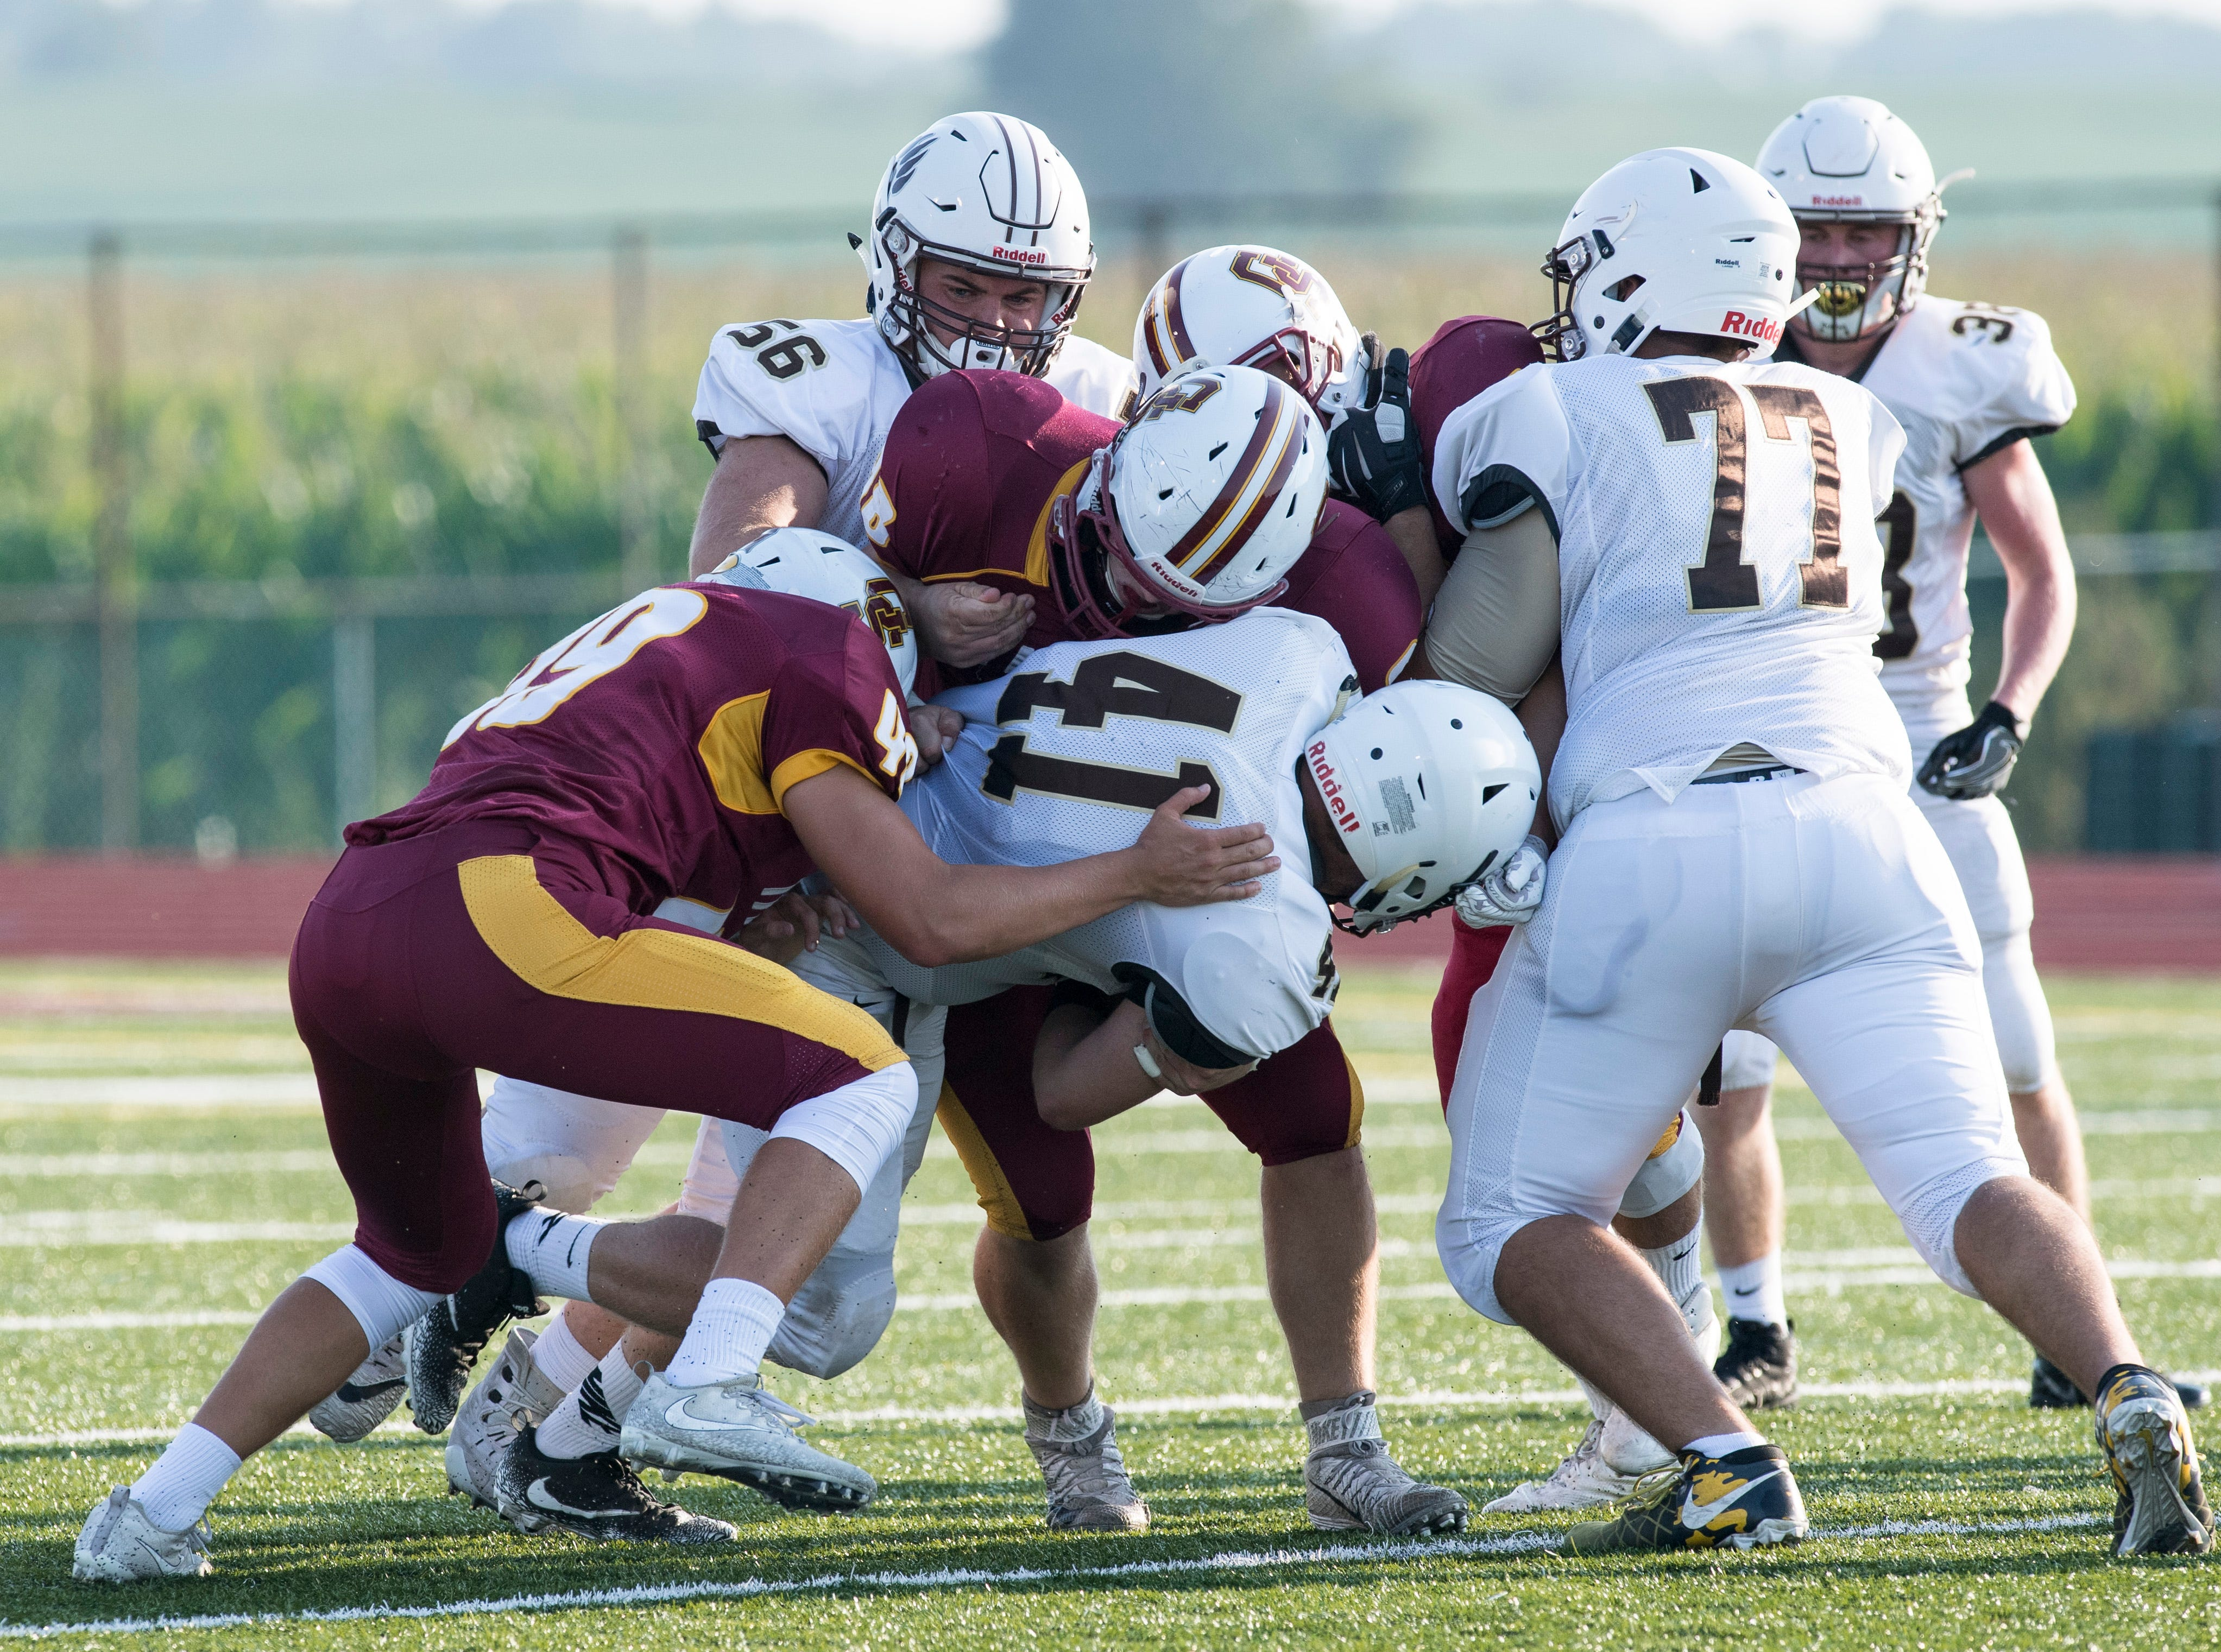 Central's Grant Maas (41) is taken down by Gibson Southern defense during a scrimmage in Fort Branch Friday, August 10, 2018.